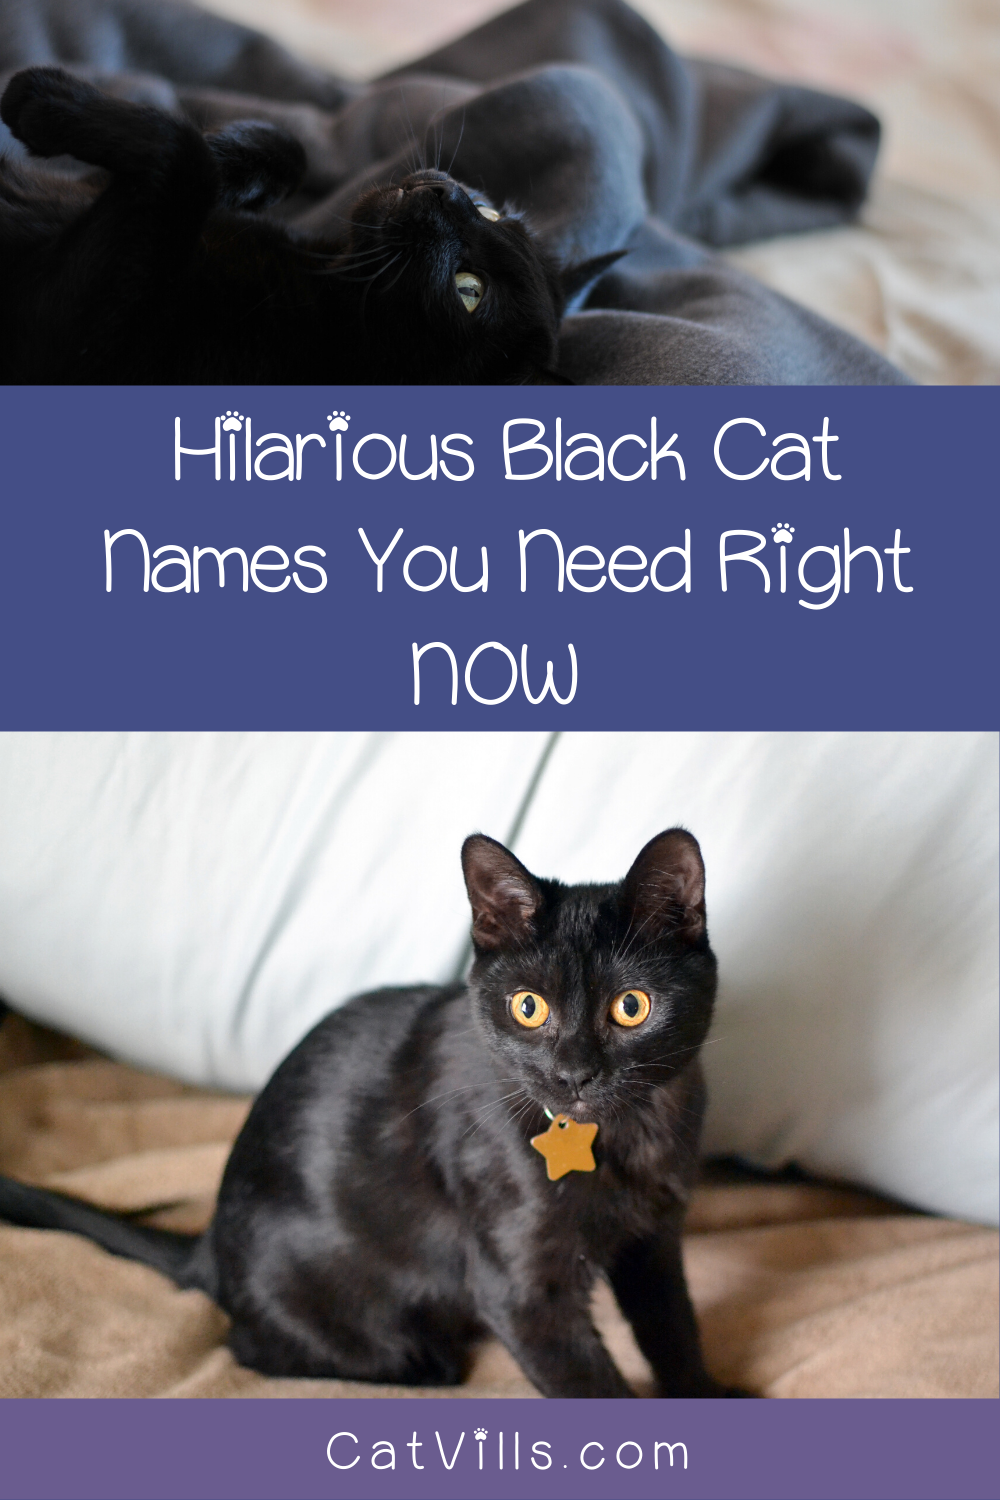 20 Absolutely Adorable Hilarious Black Cat Names Catvills In 2020 Cat Names Cute Black Cats Cats